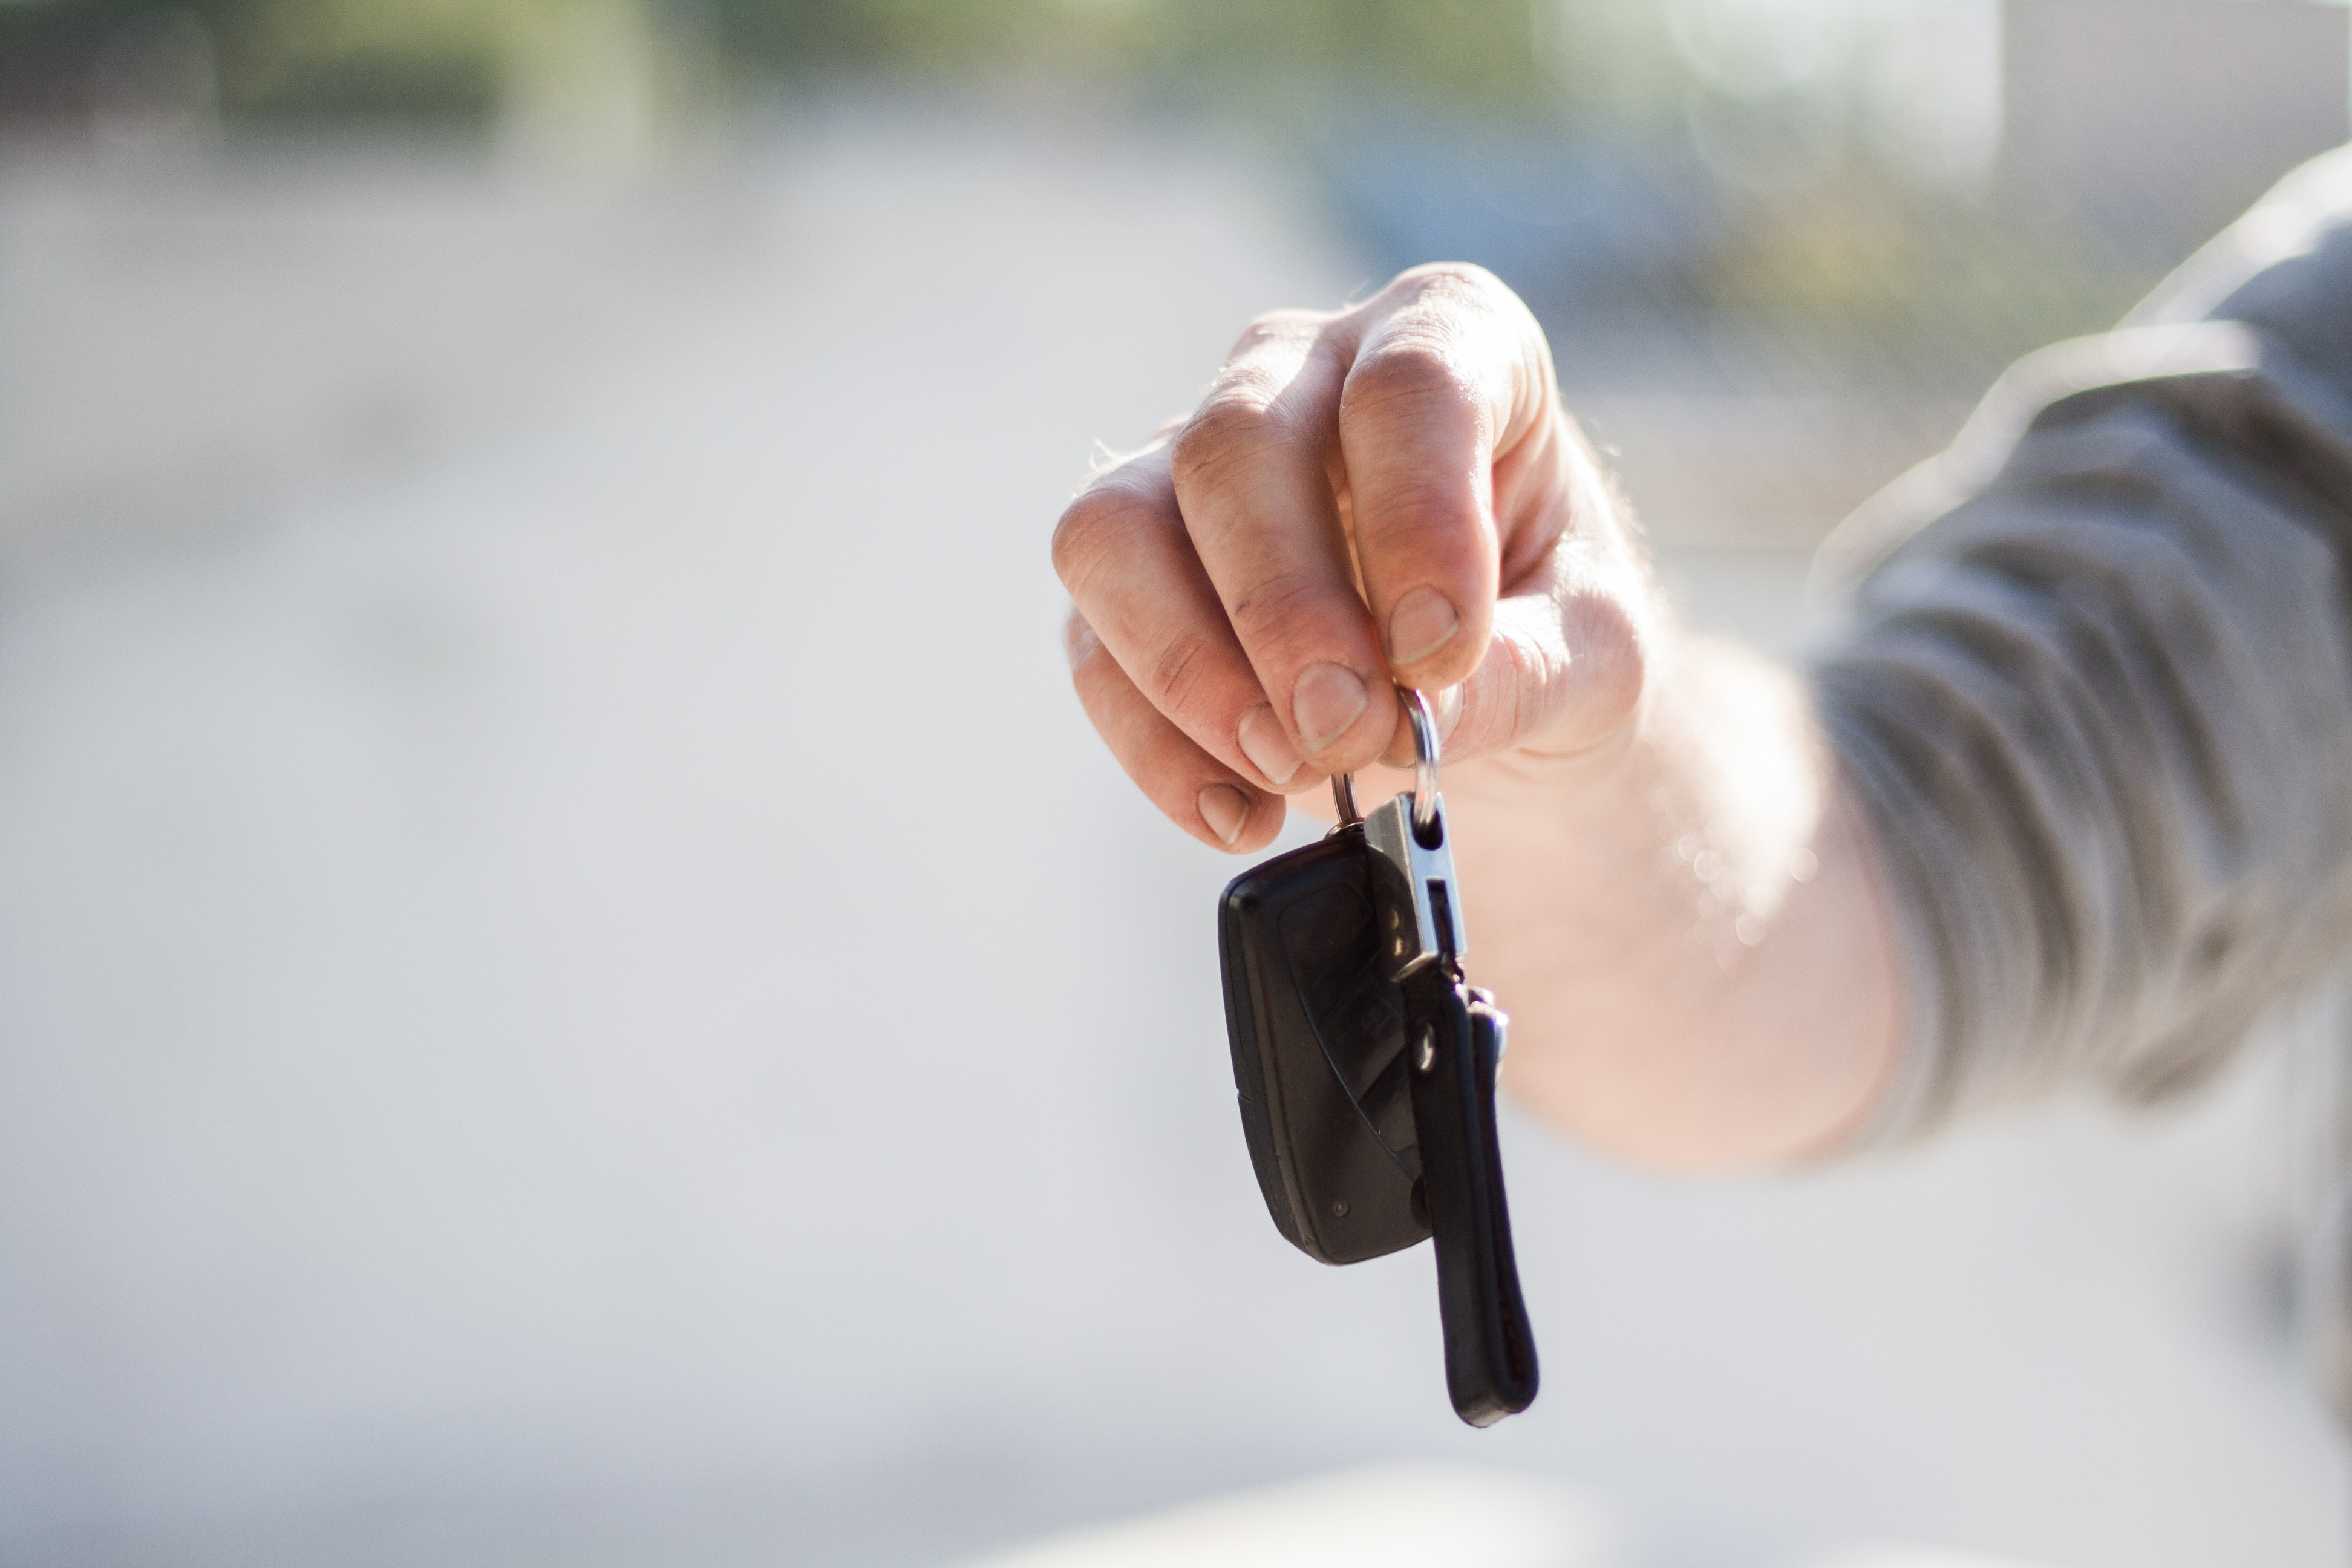 Person handing over keys to a used vehicle after a customer purchased it